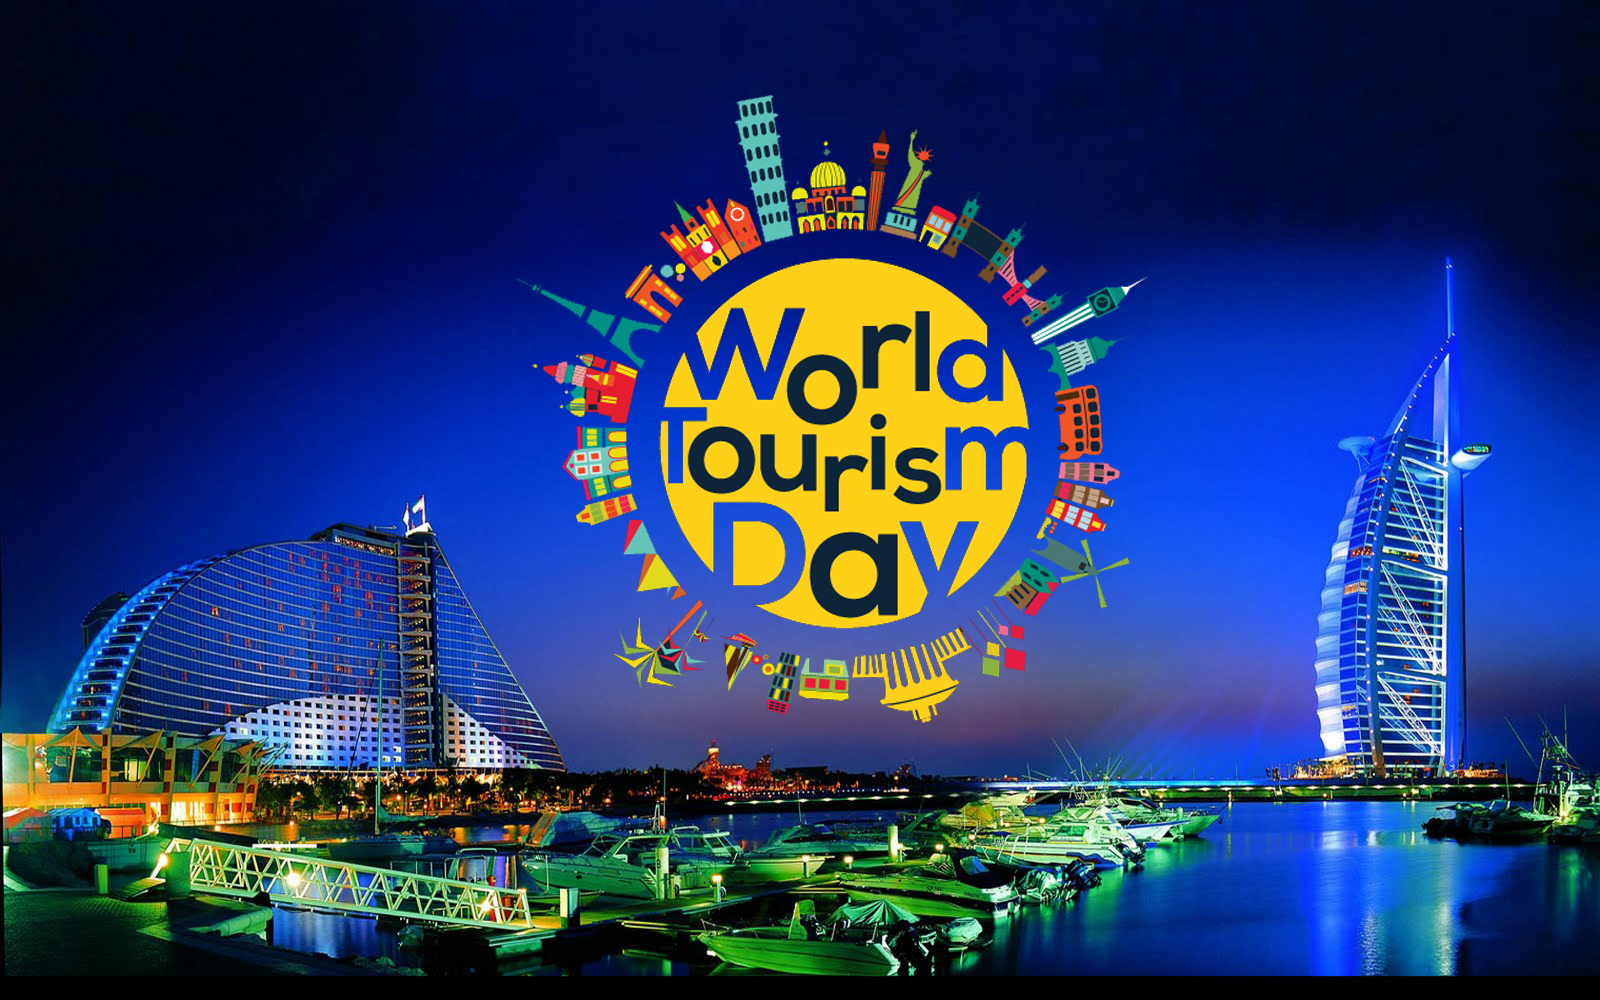 Best Pic In The World For Whatsapp : Best World Tourism Day Quotes, Images & Wallpapers for Facebook ...